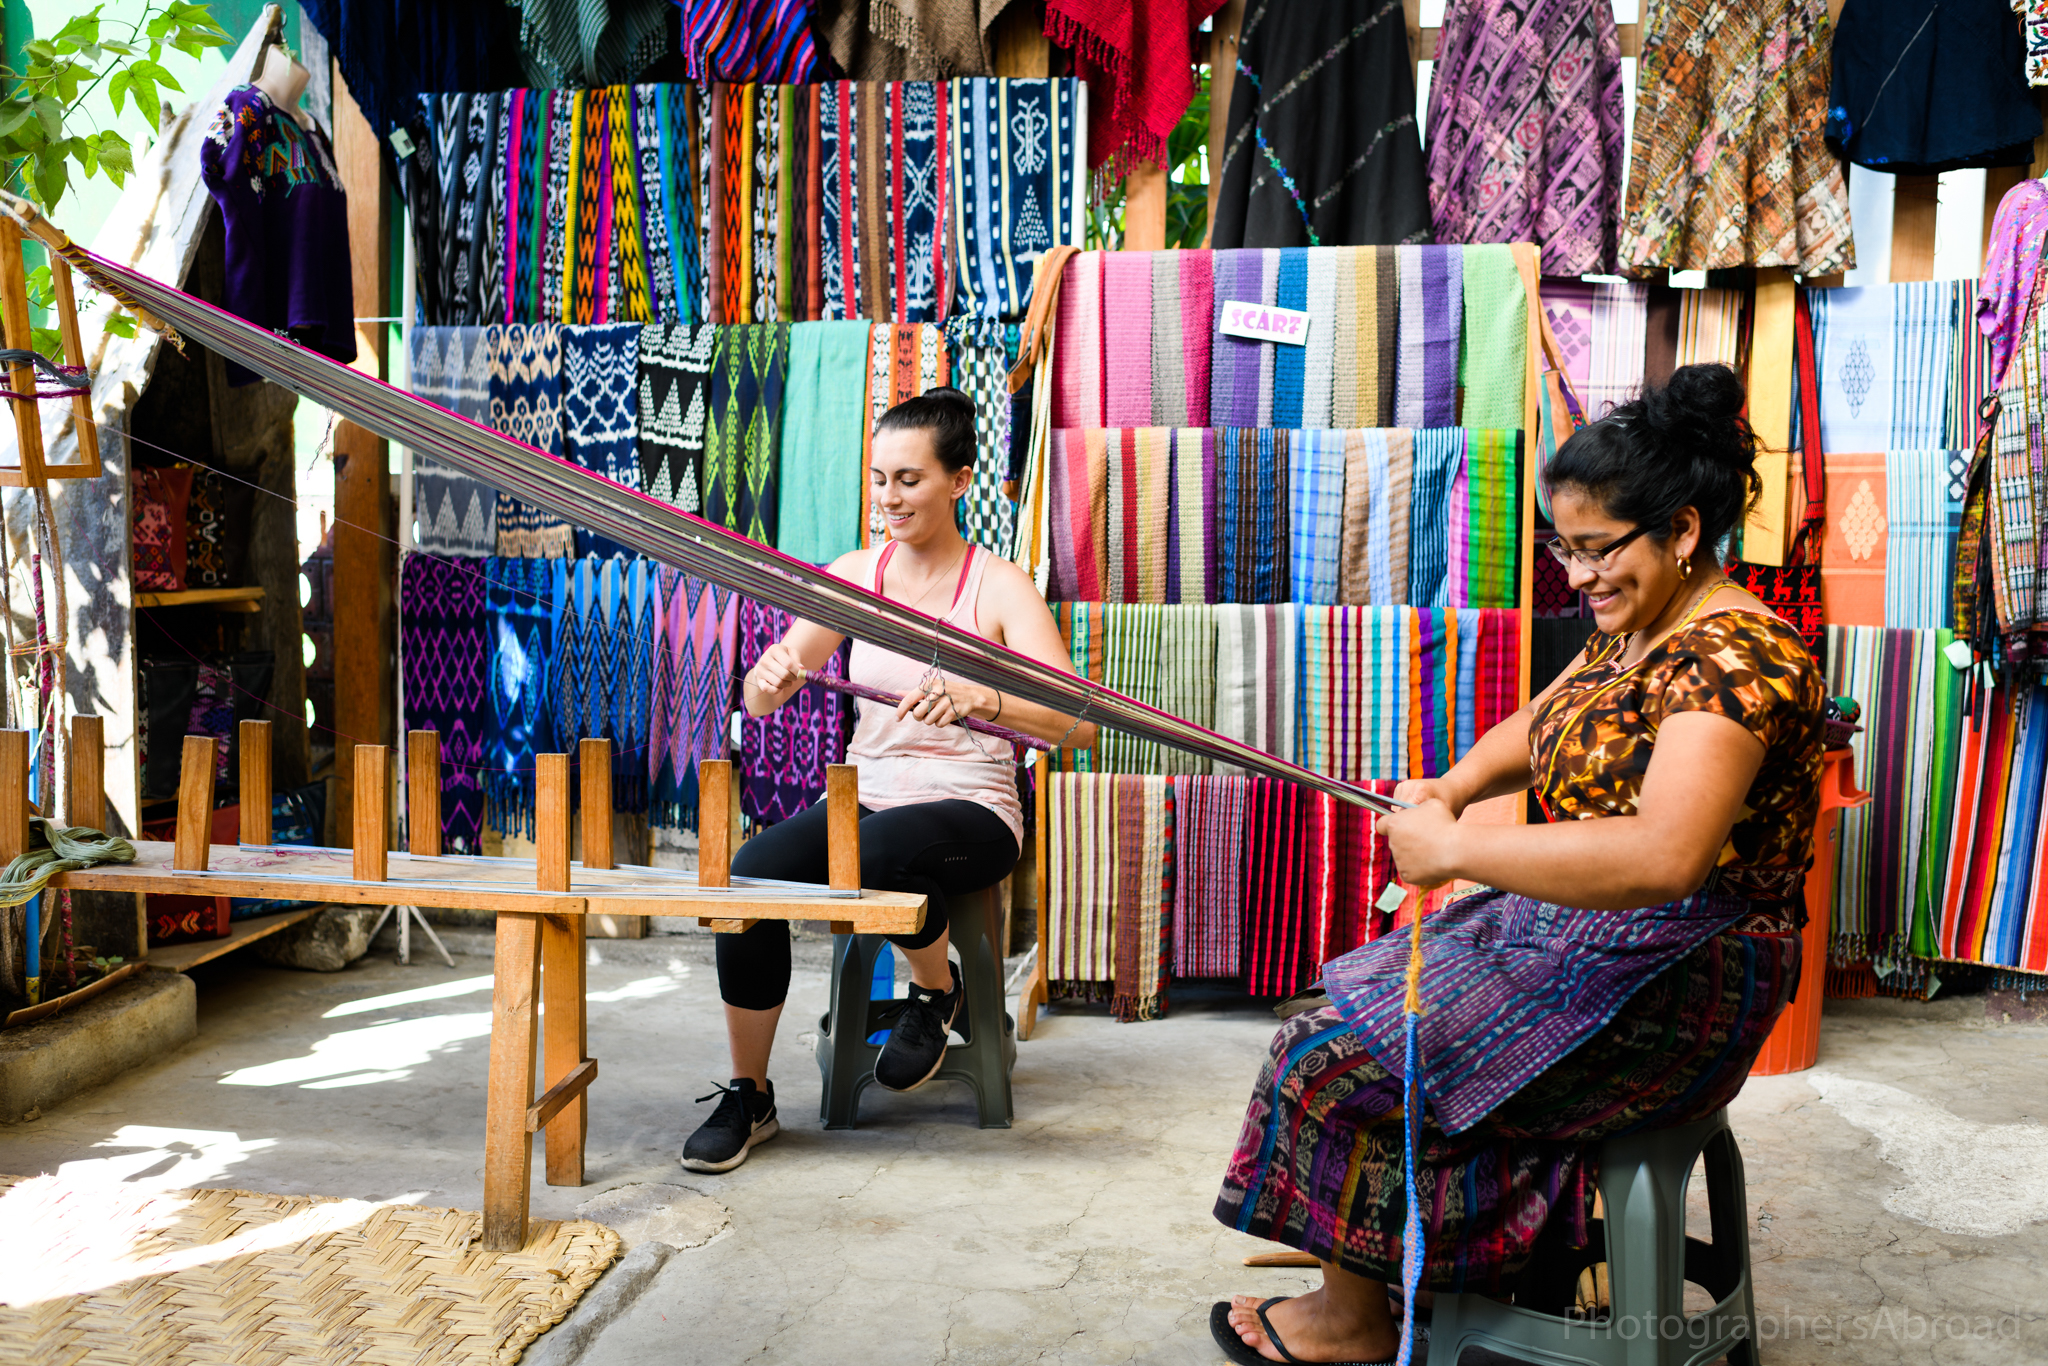 I wind threads around the shuttle - a large wooden dowel that passes the thread through the layers of the yarn - while Ana Lady sets up the backstrap loom.